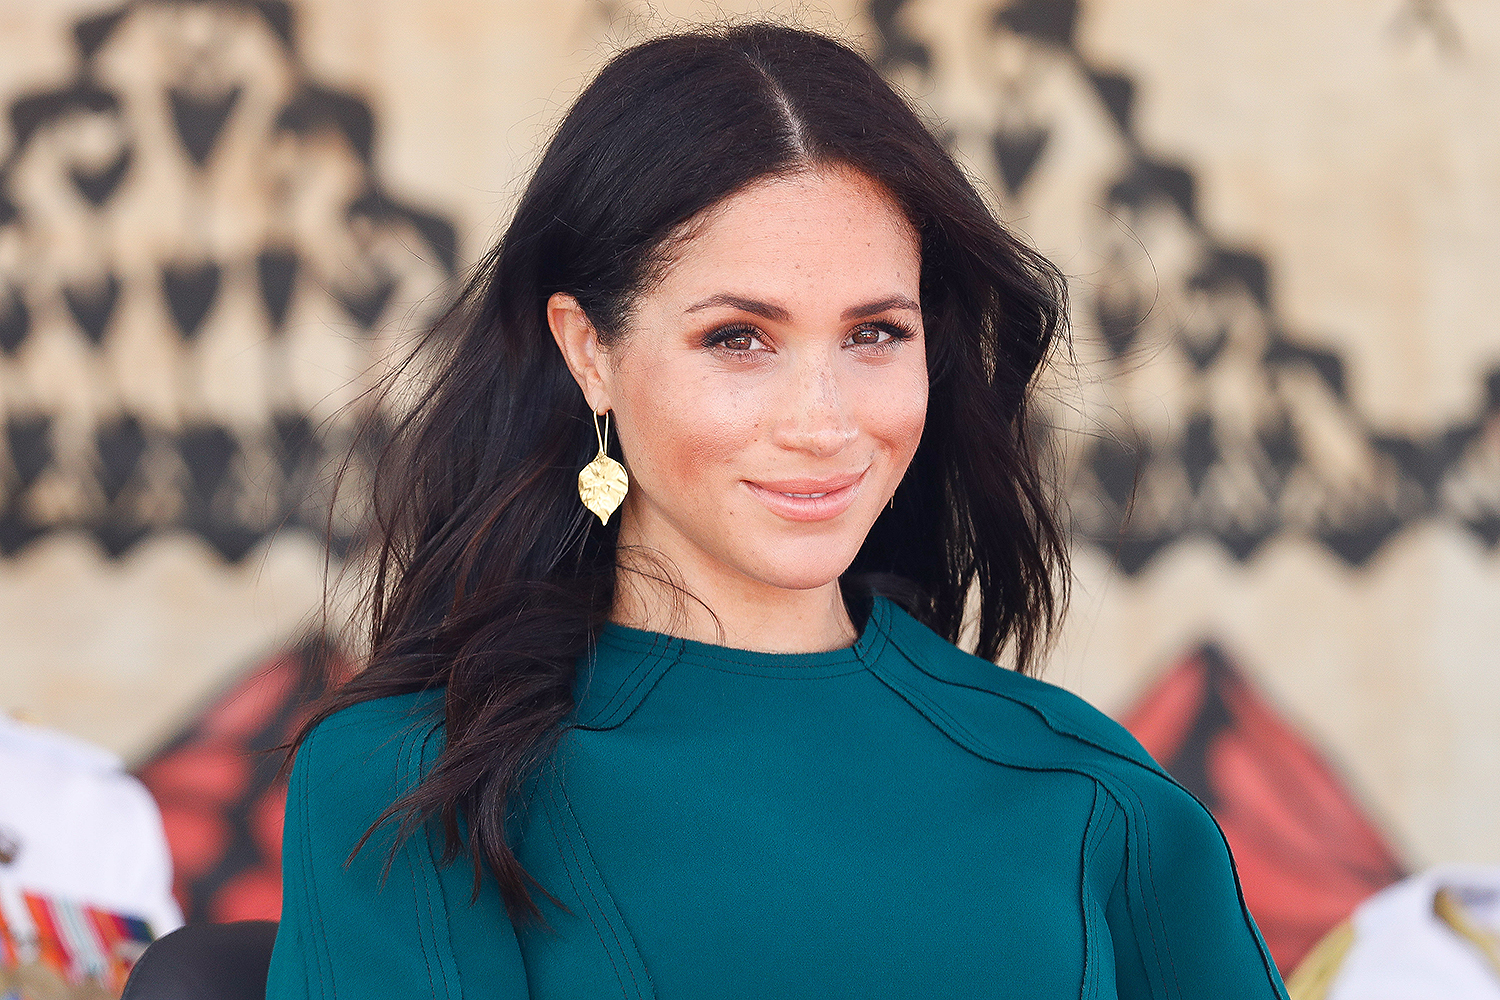 meghan-markle-shares-empowering-message-about-voting-being-a-legacy-video